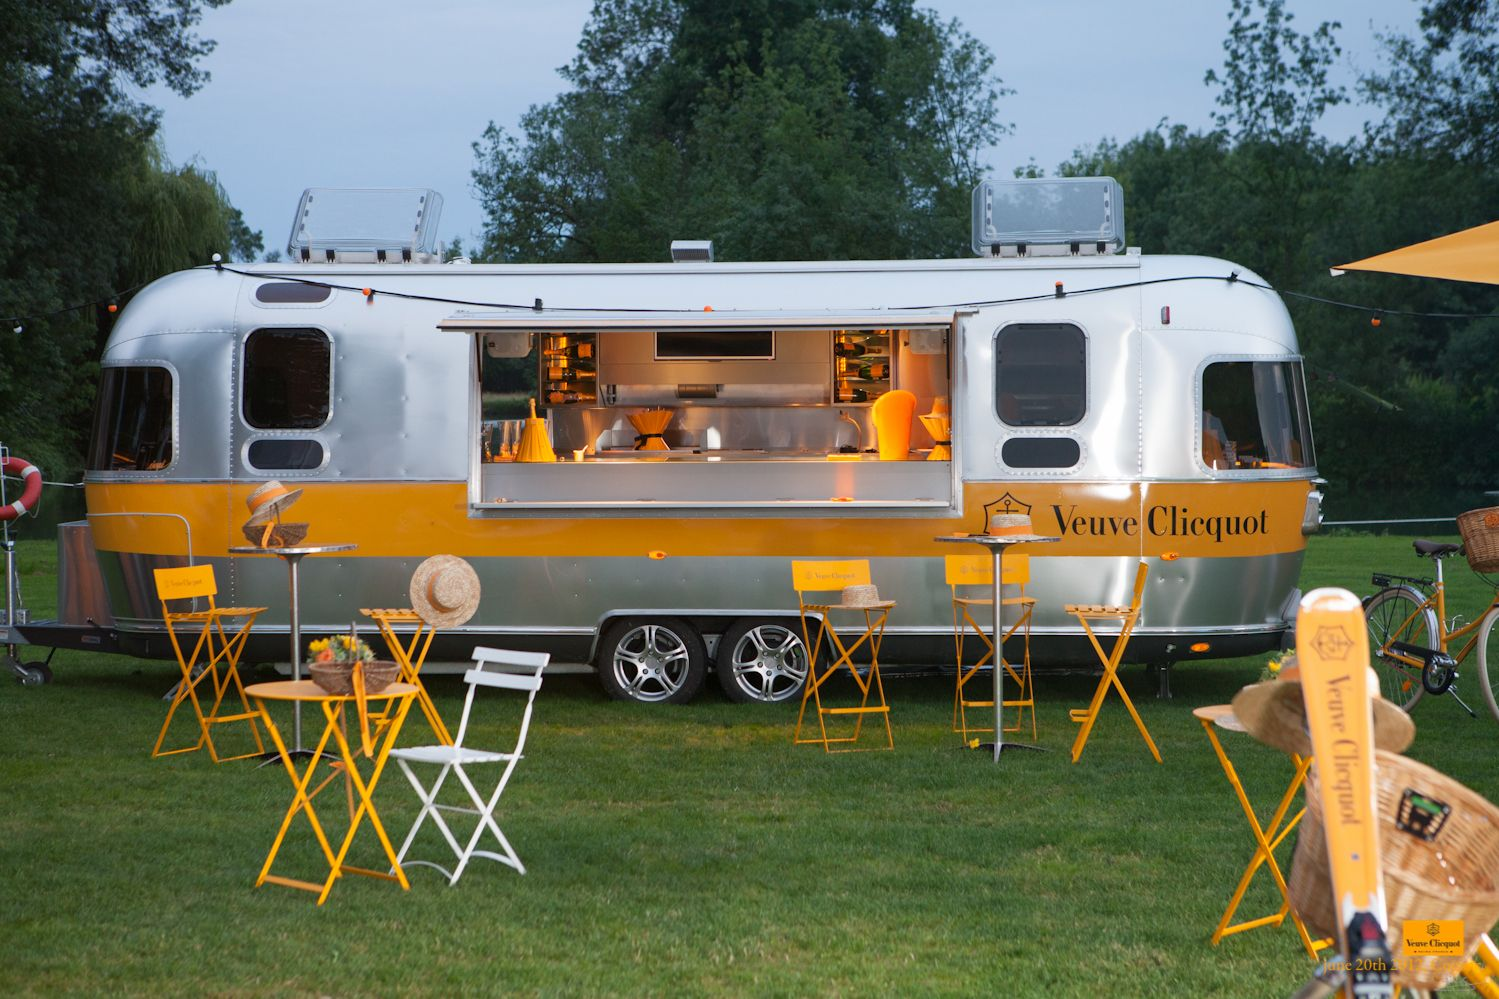 Two of the best things in life #veuveclicquot #airstream